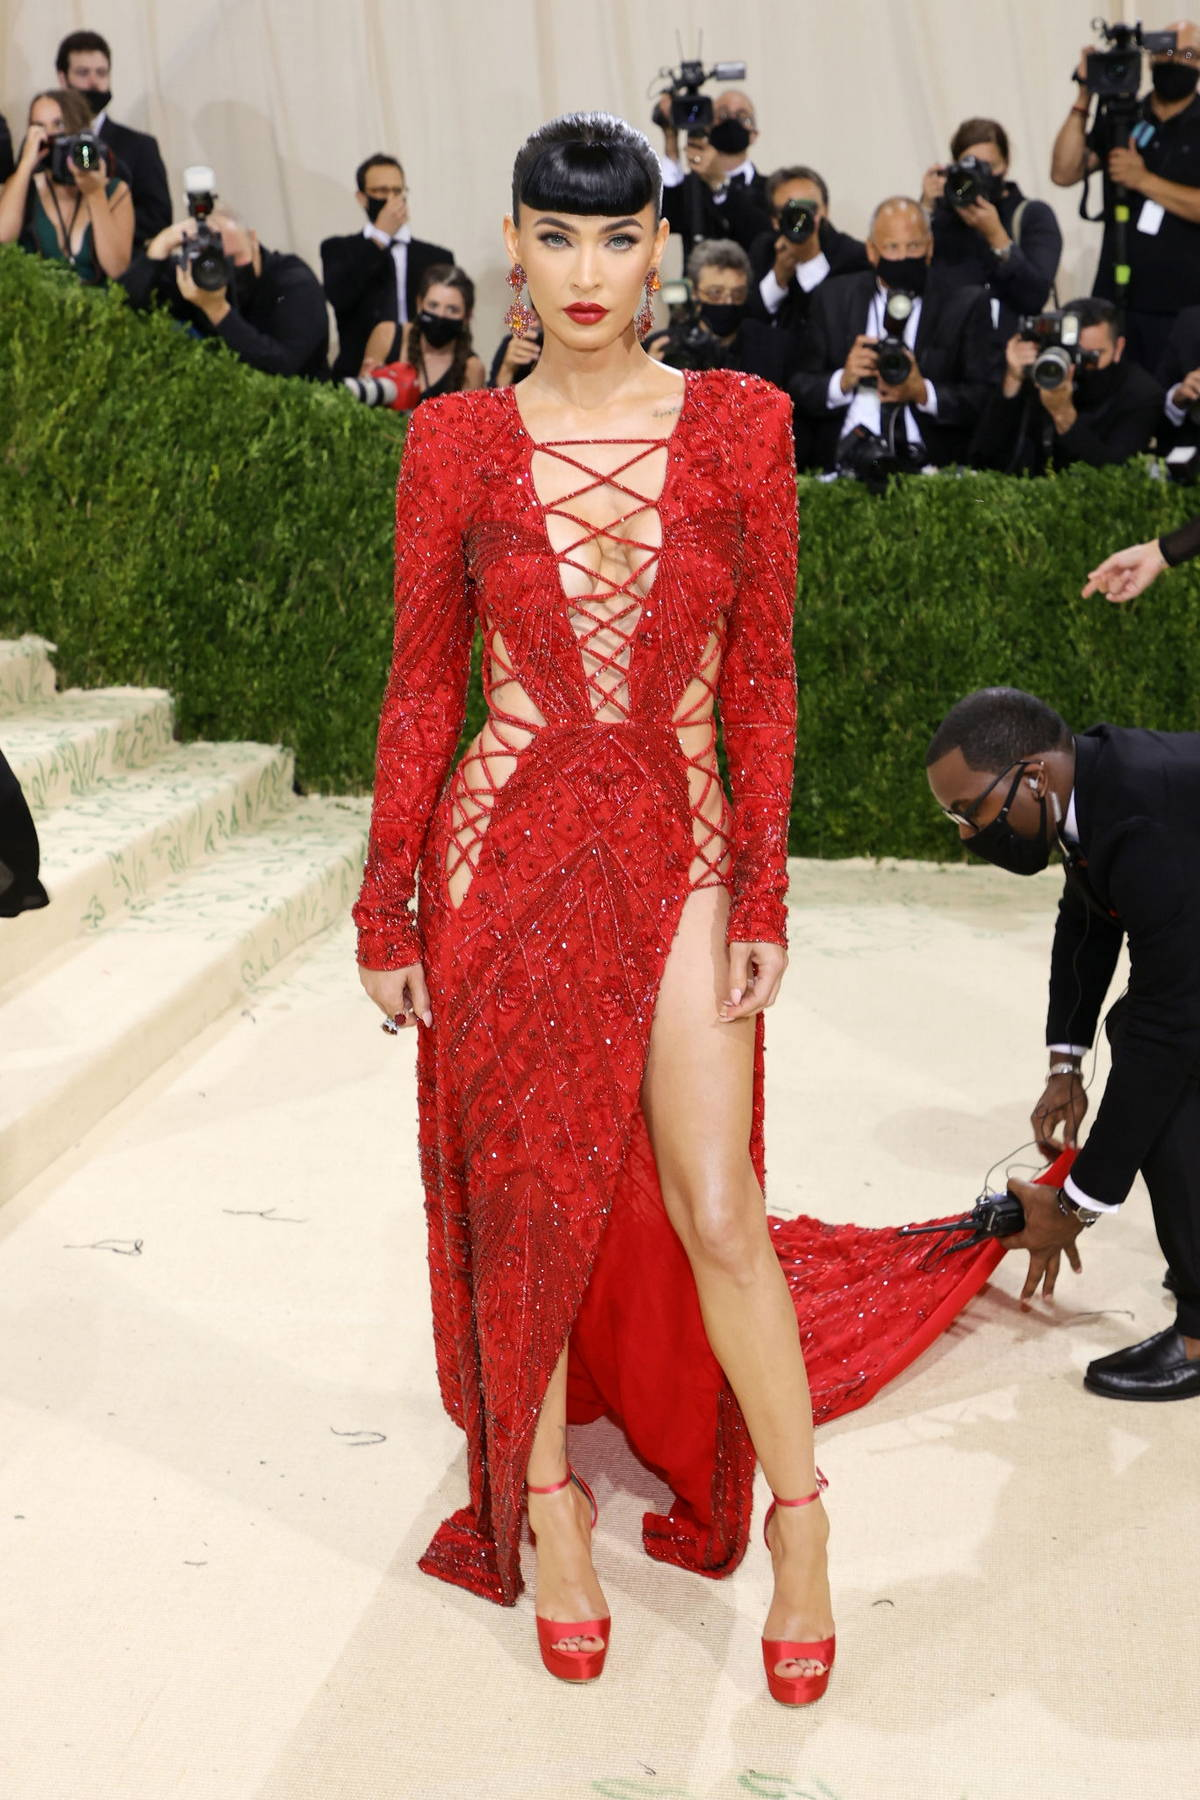 Megan Fox attends The Met Gala Celebrating In America: A Lexicon Of Fashion at Metropolitan Museum of Art in New York City